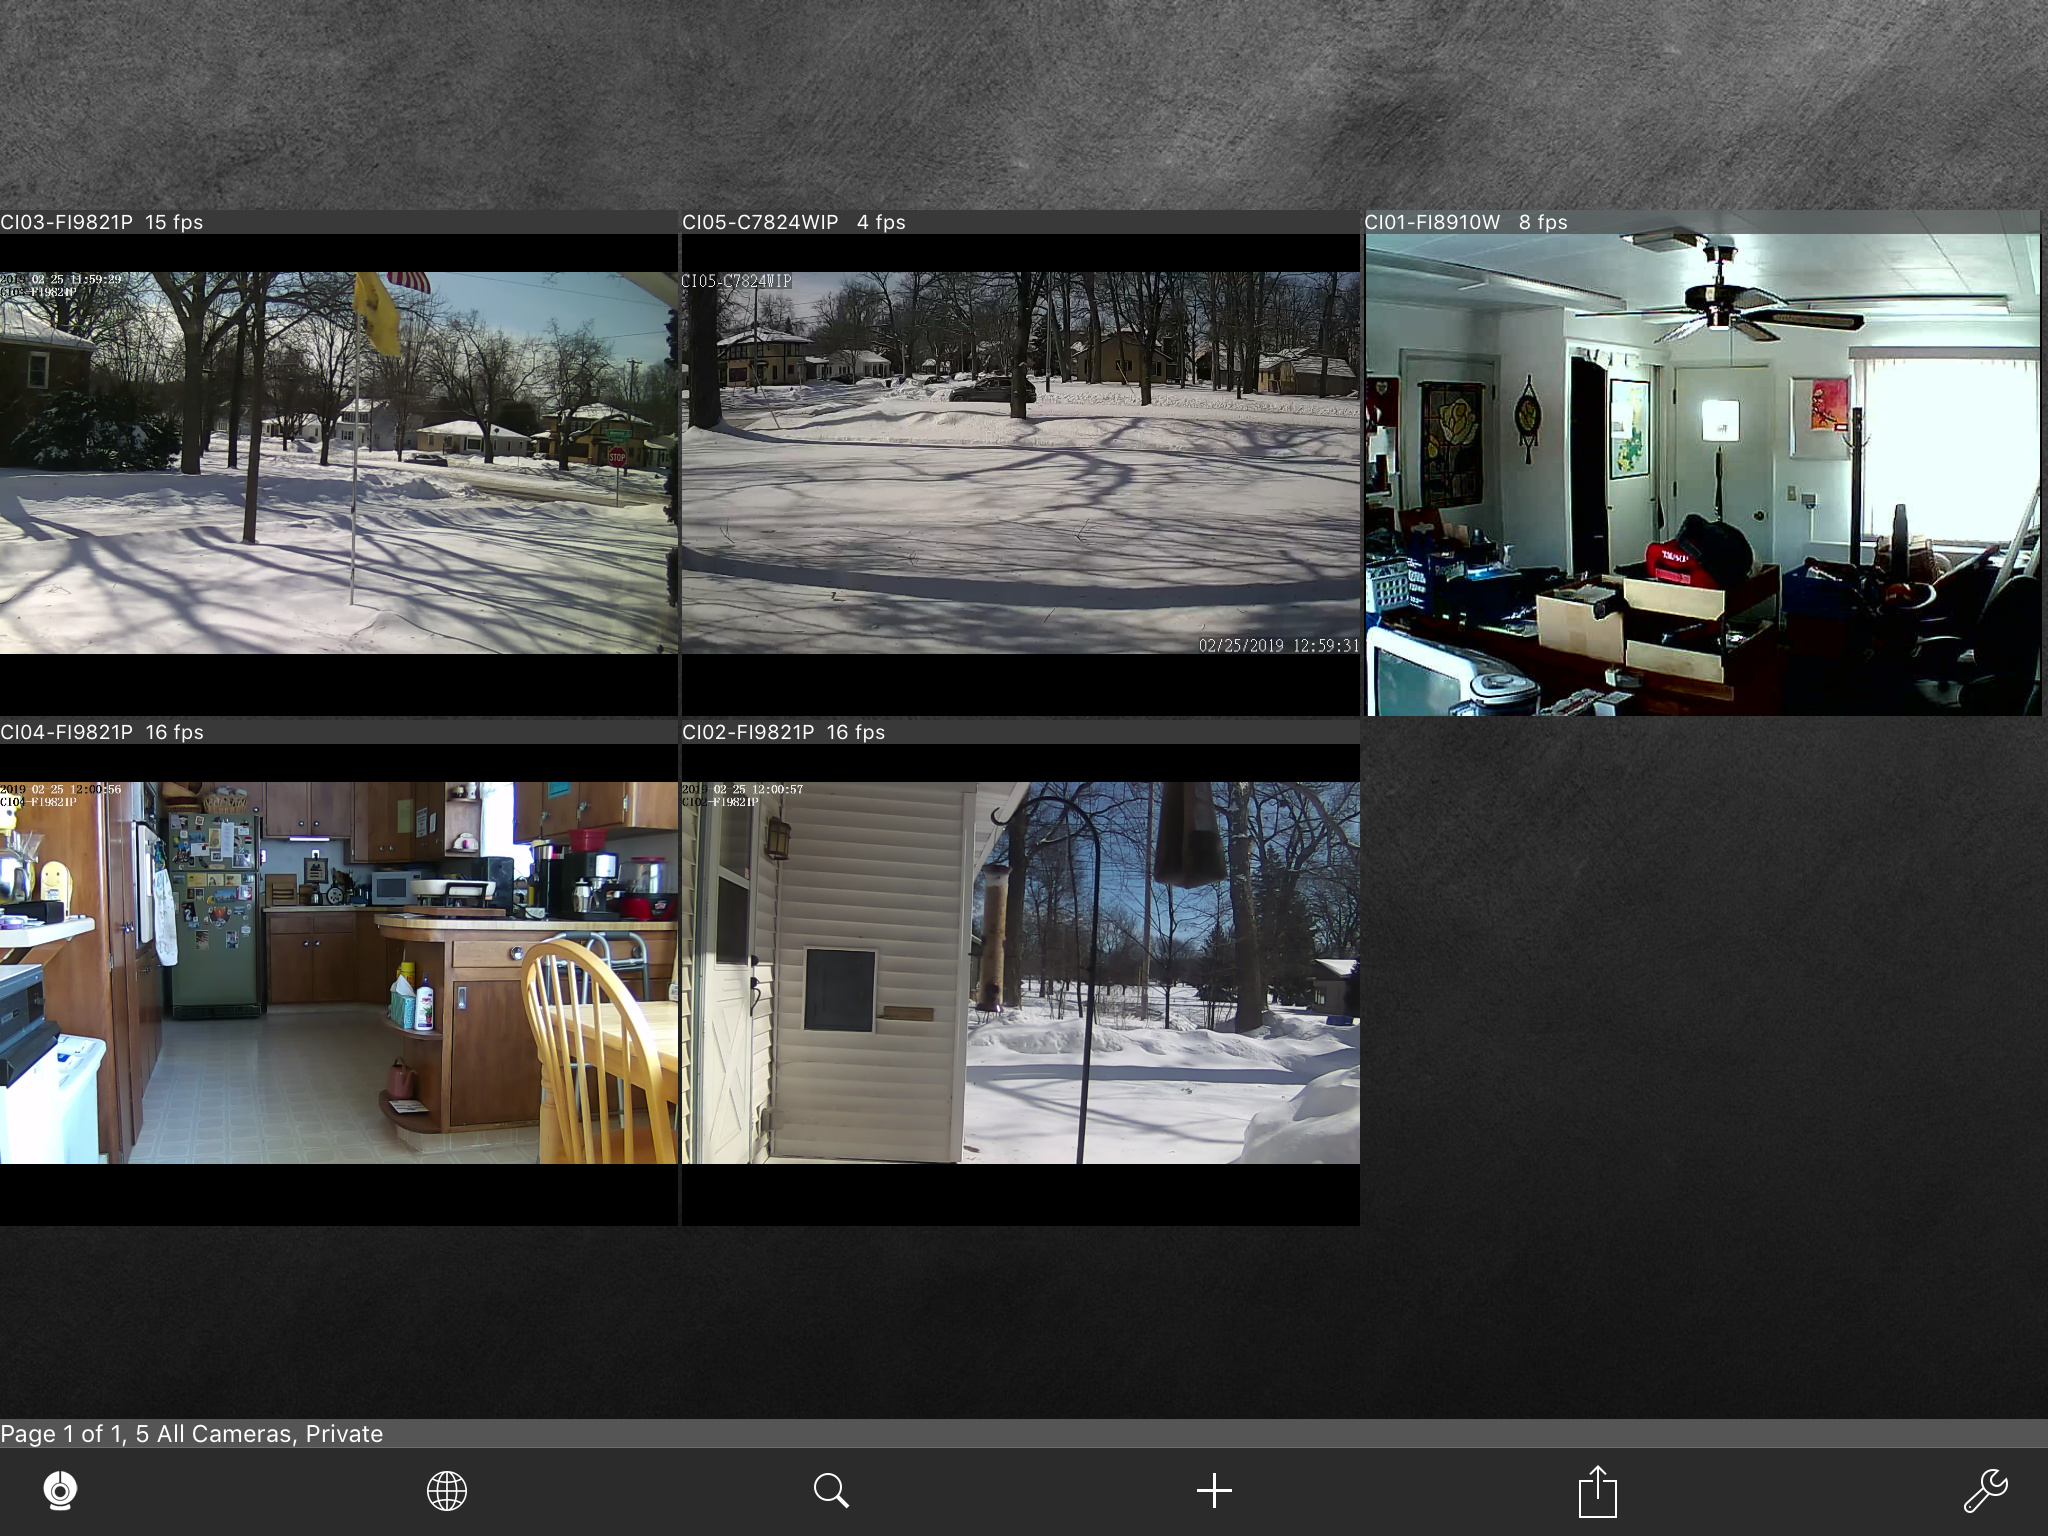 Indoor security camera without ongoing recording to the cloud costs